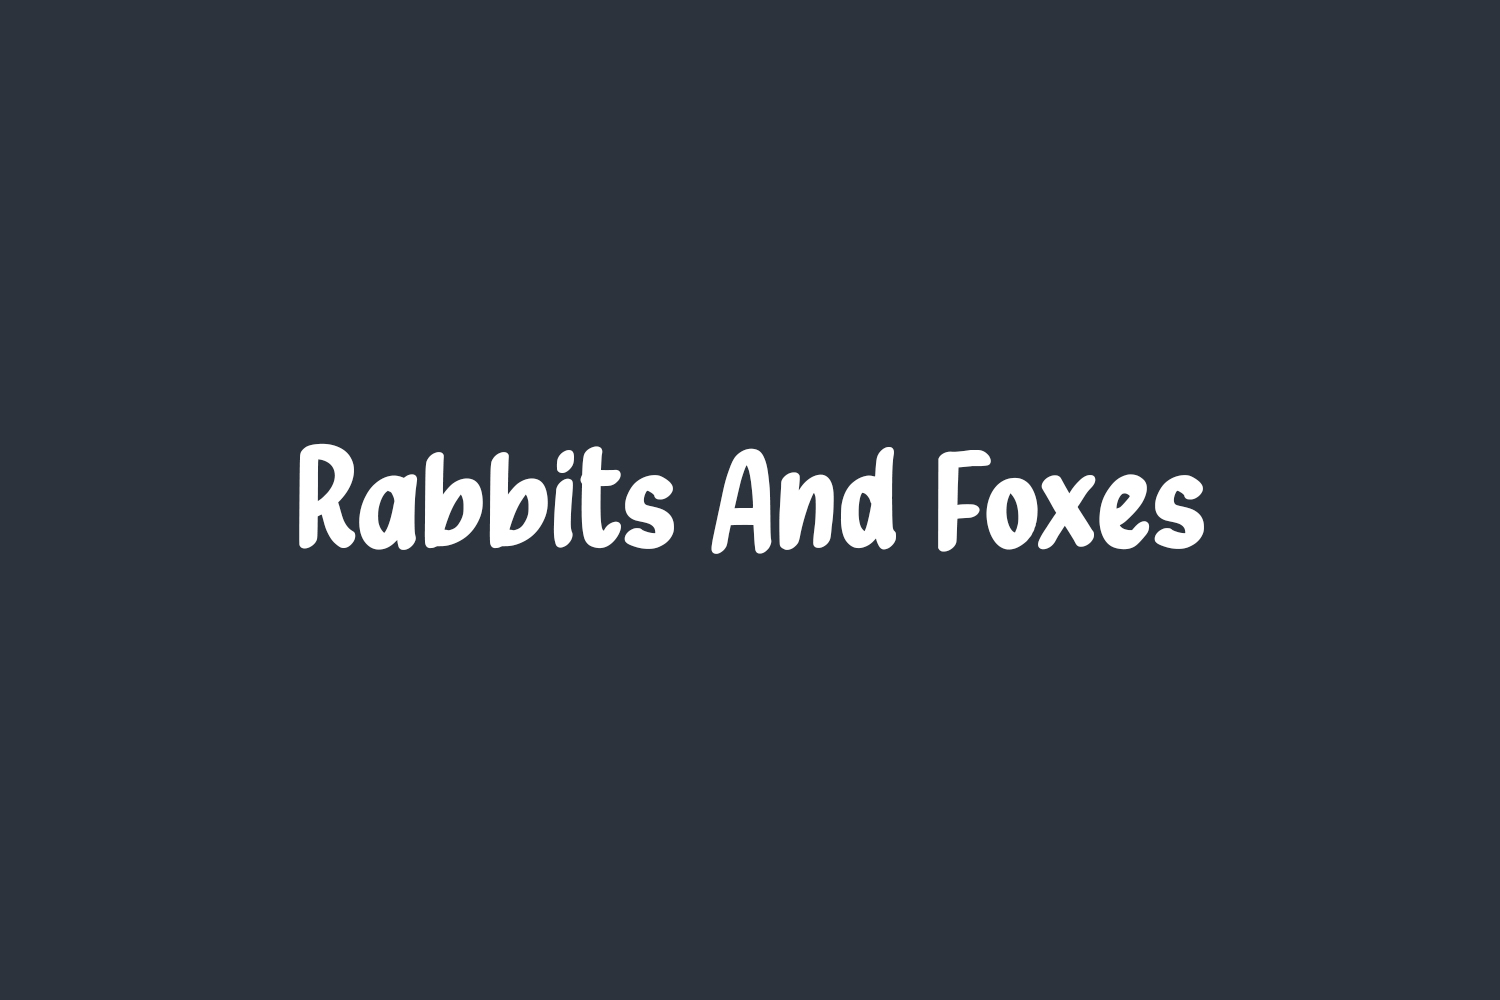 Rabbits And Foxes Free Font